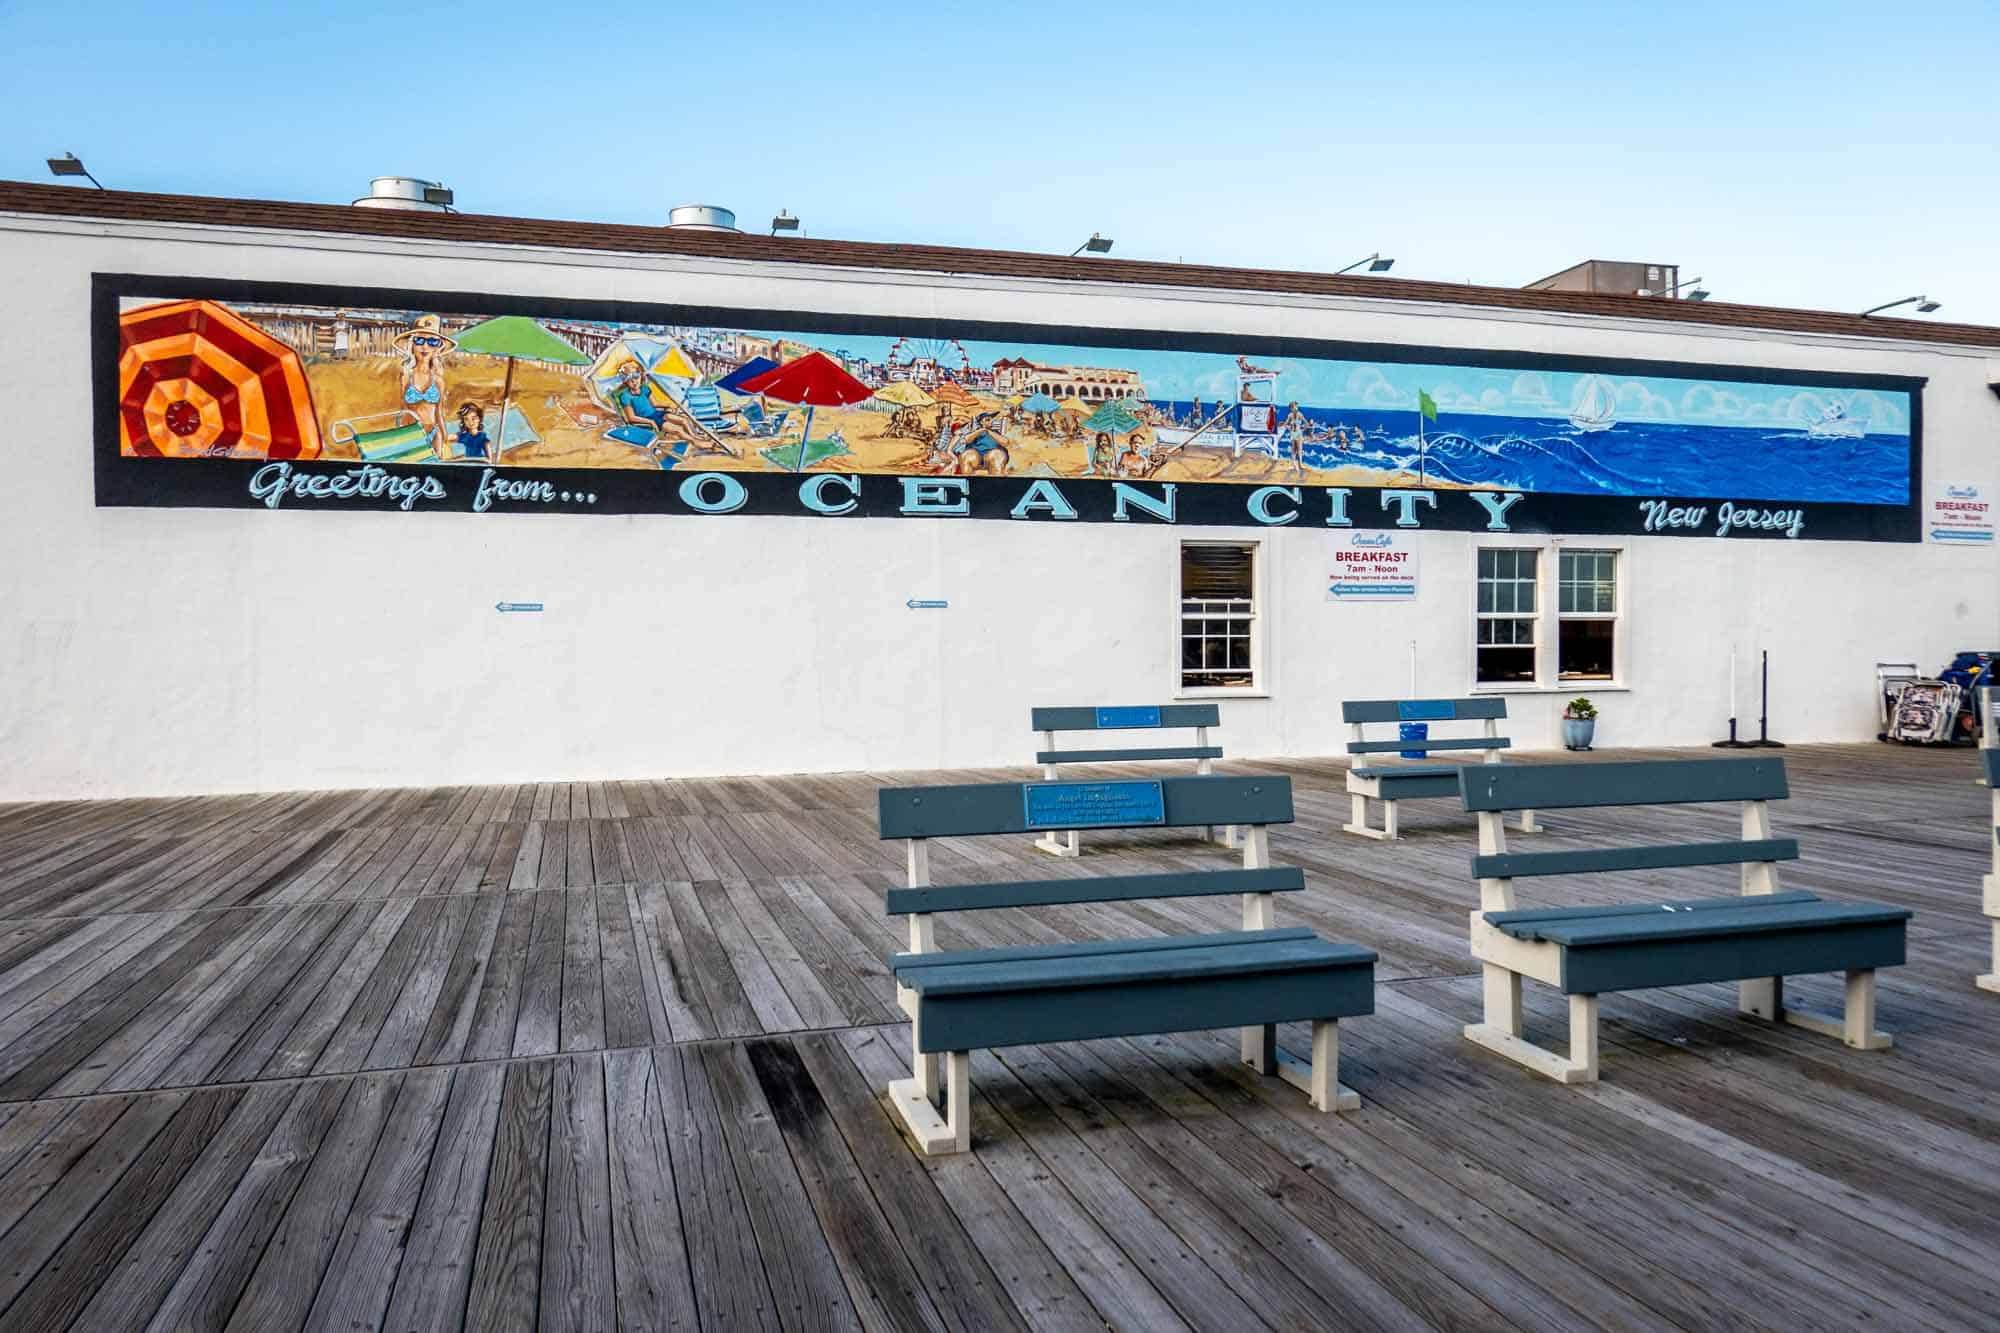 Greetings from Ocean City New Jersey mural along the Boardwalk